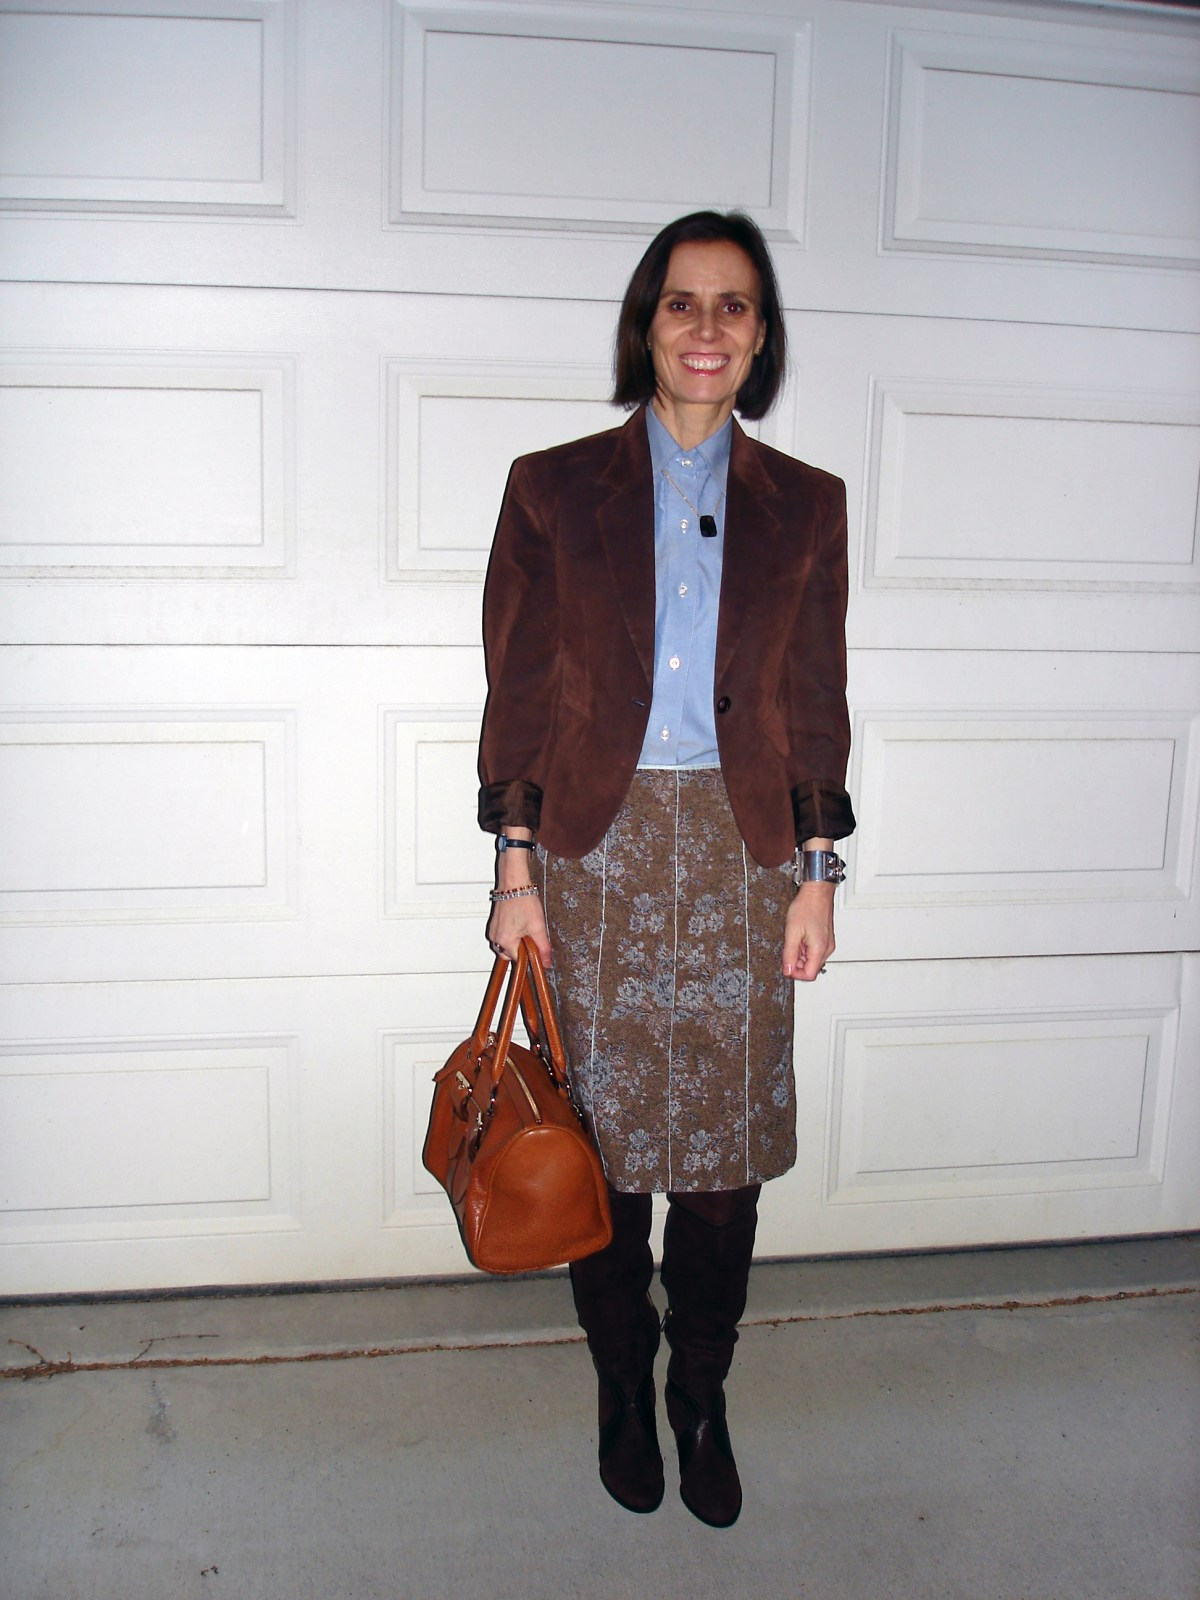 Winter job interview outfit for women